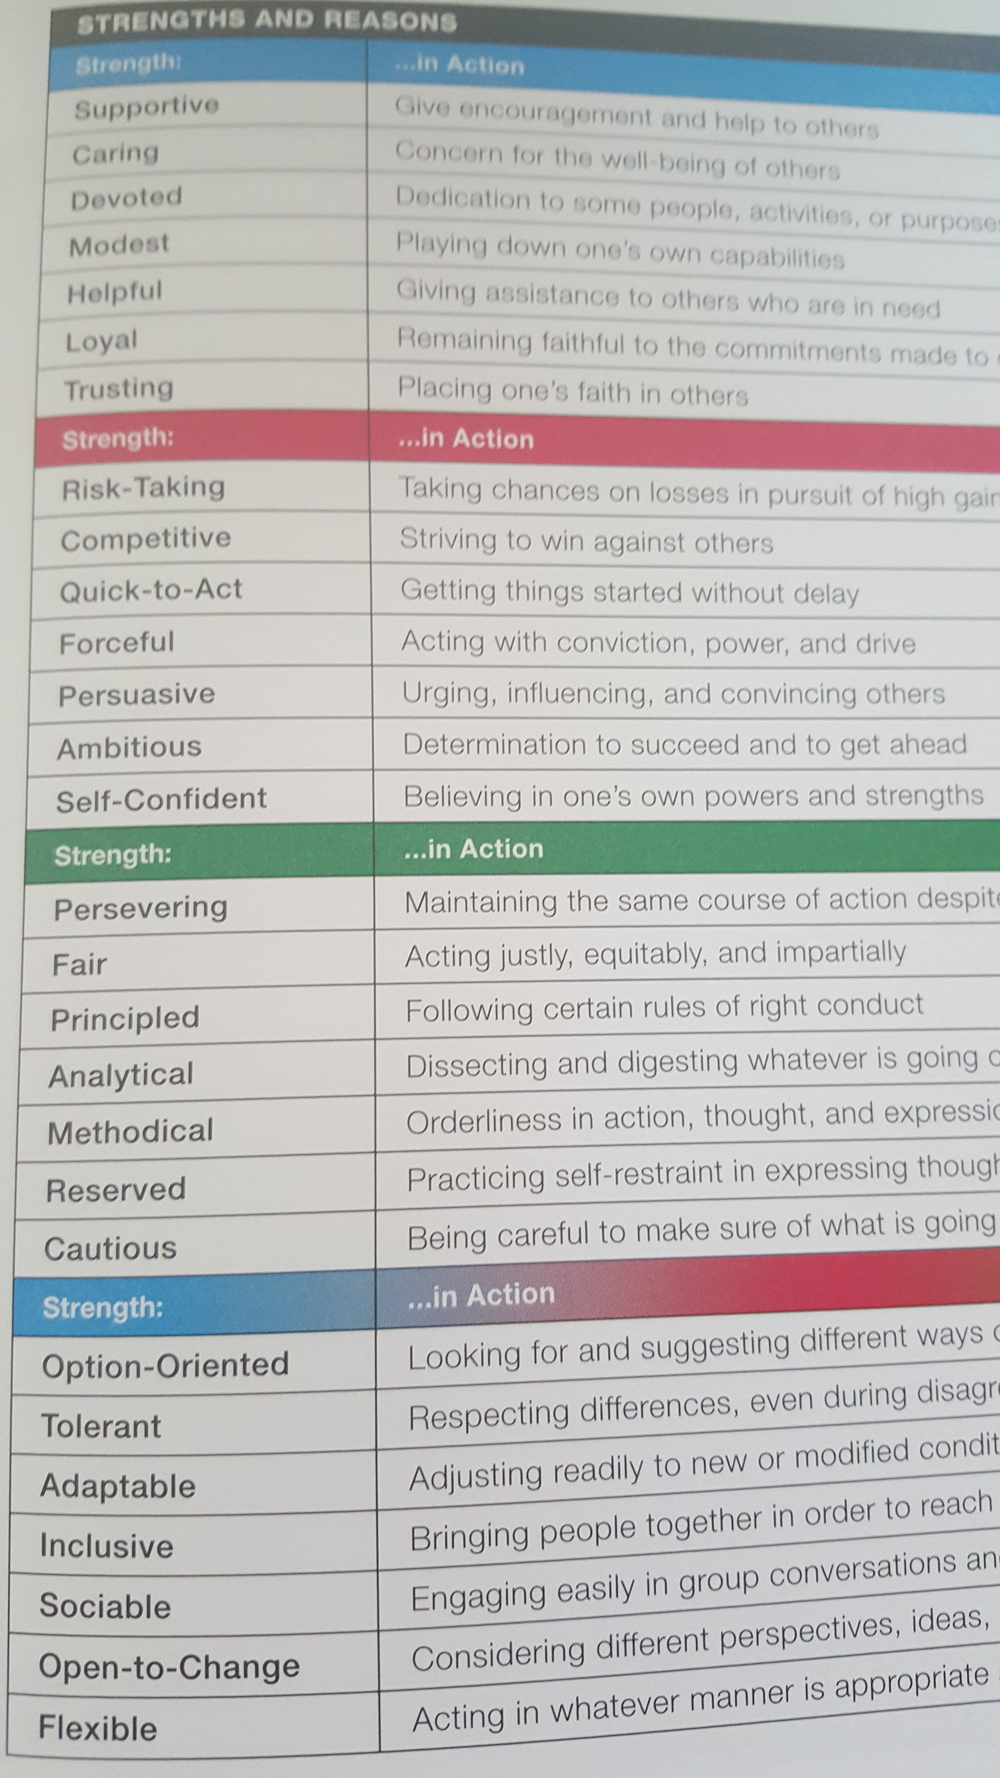 List of 28 Strengths which are assessed